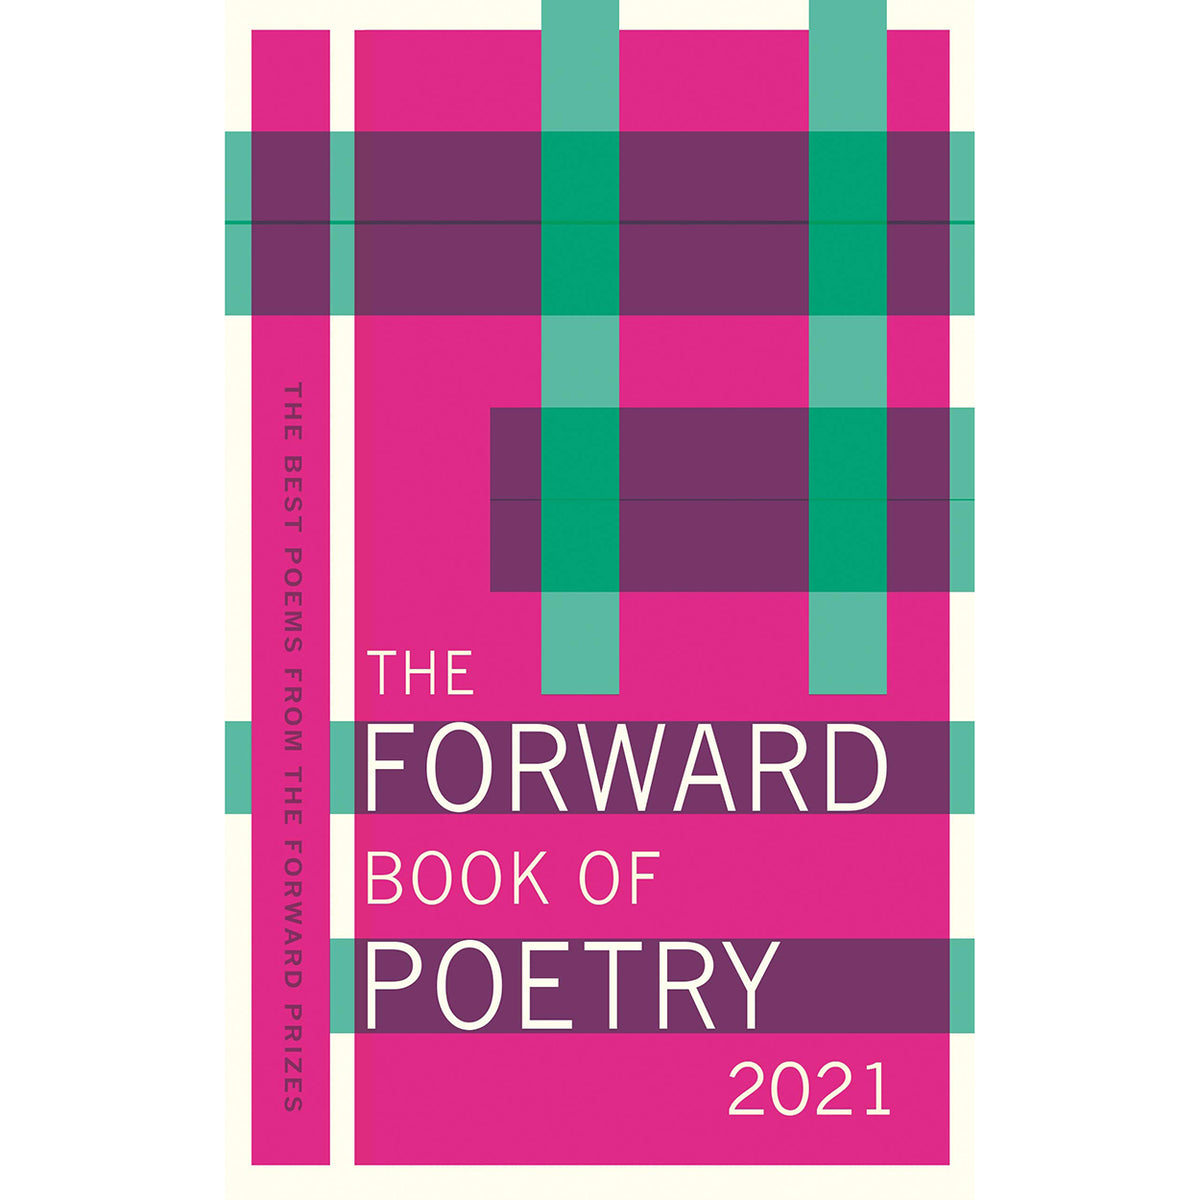 cover of The Forward Book of Poetry 2021